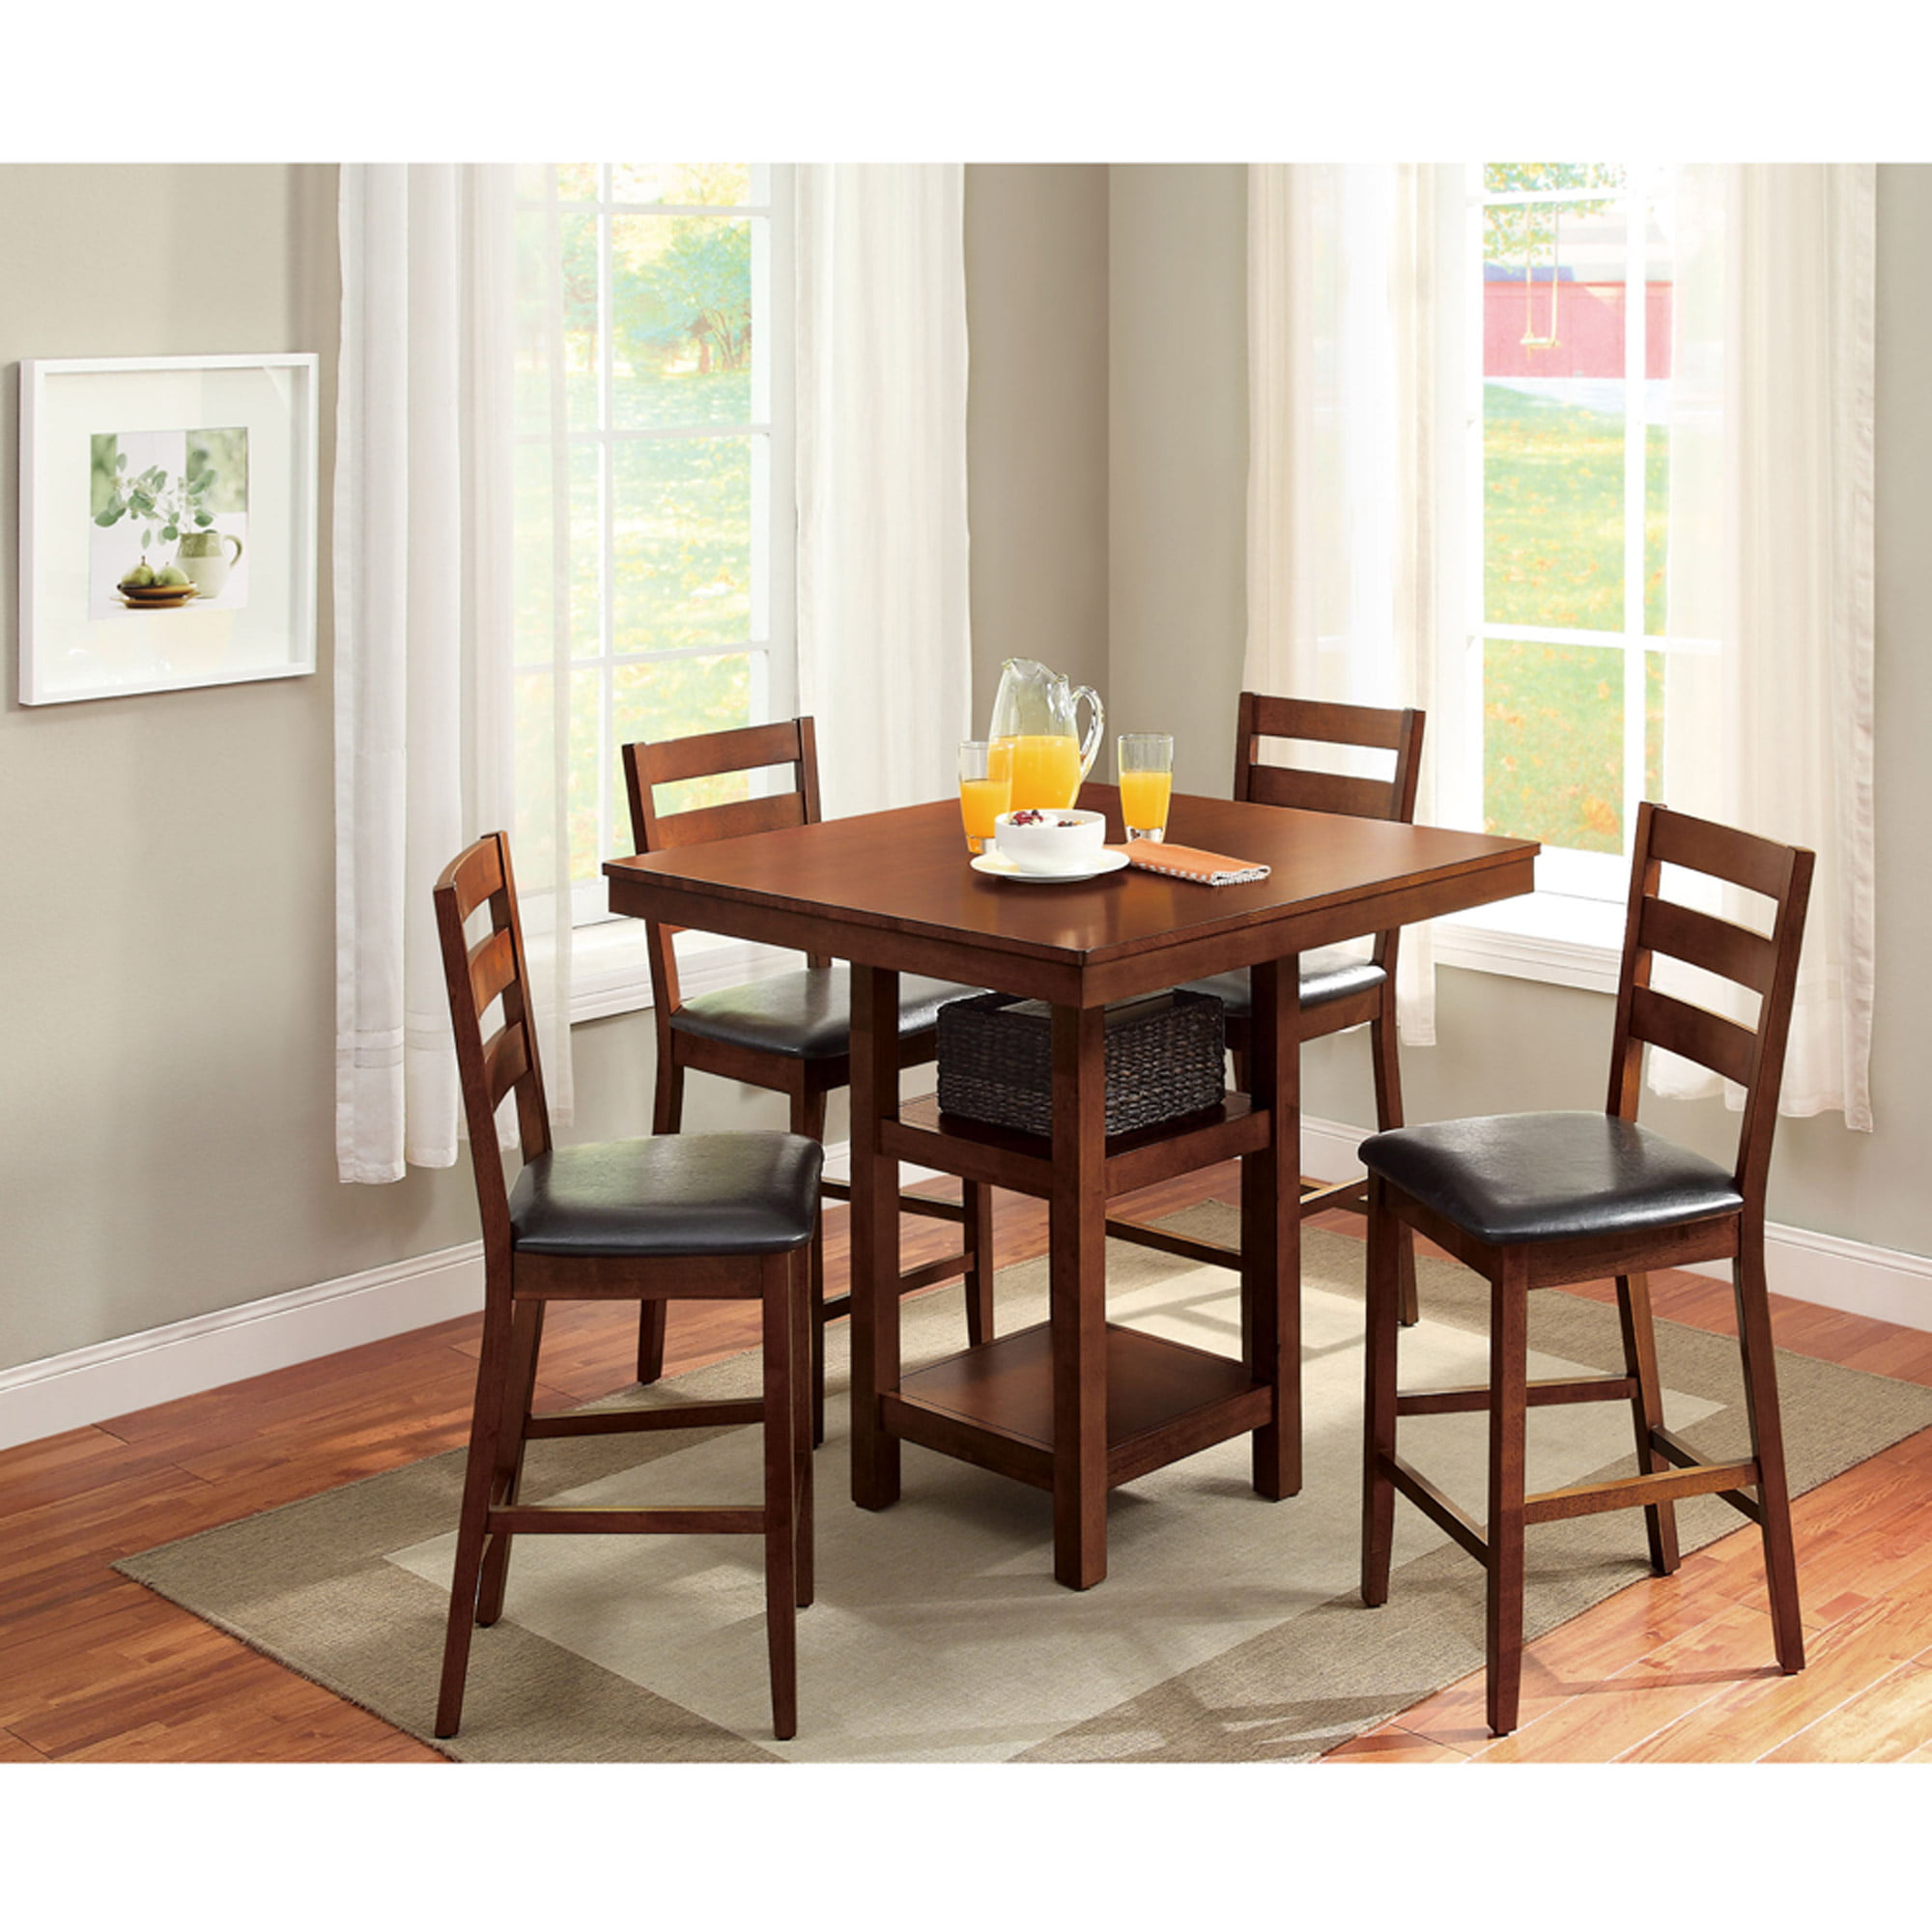 Better Homes & Gardens Dalton Park 5-Piece Counter Height Dining Set -  Walmart.com